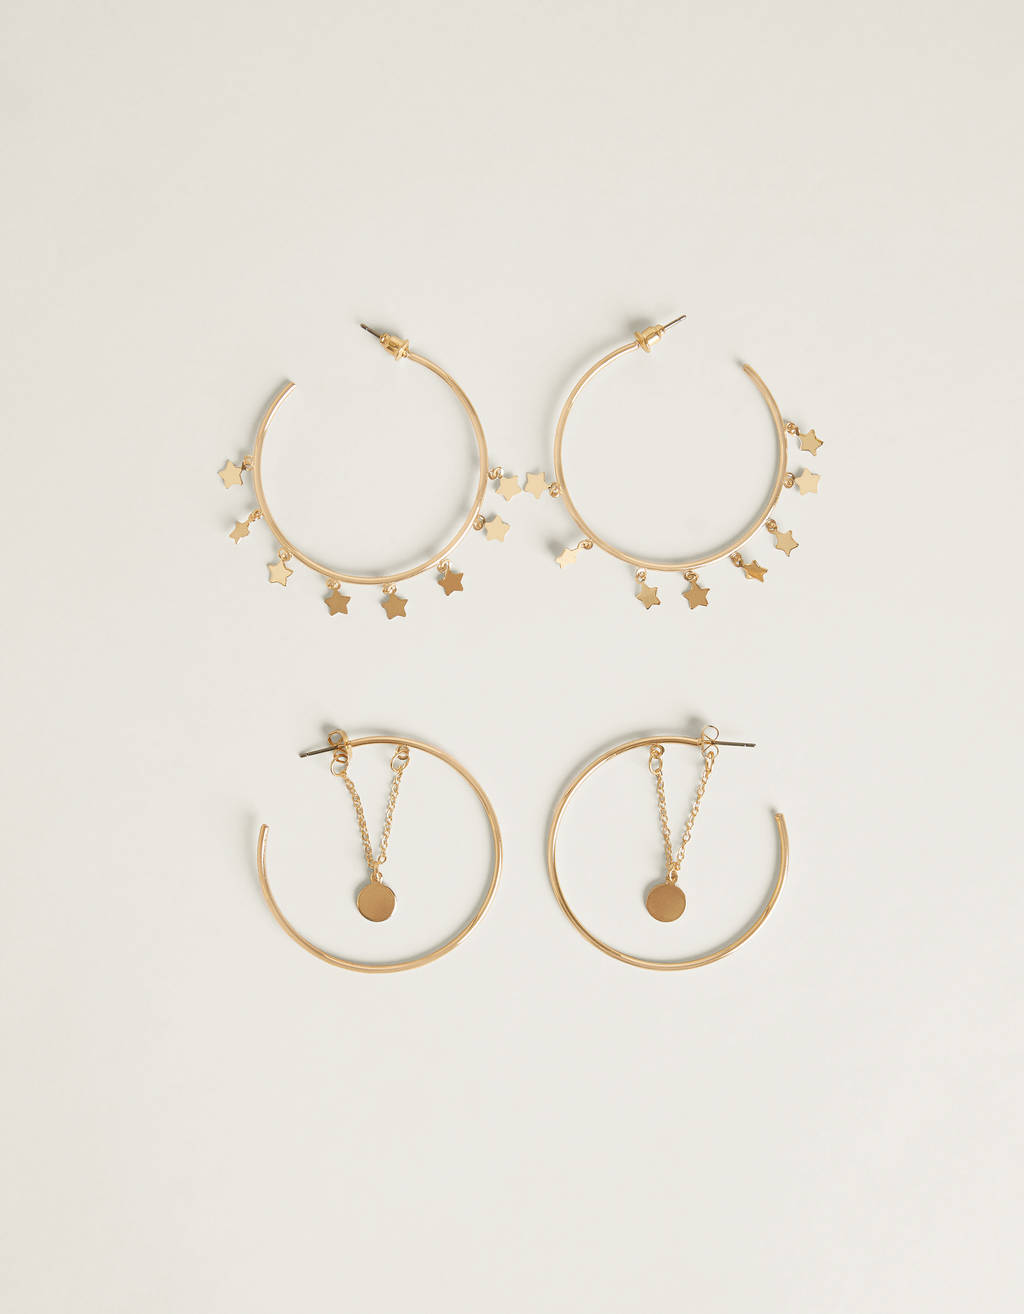 Set of hoop earrings with charms